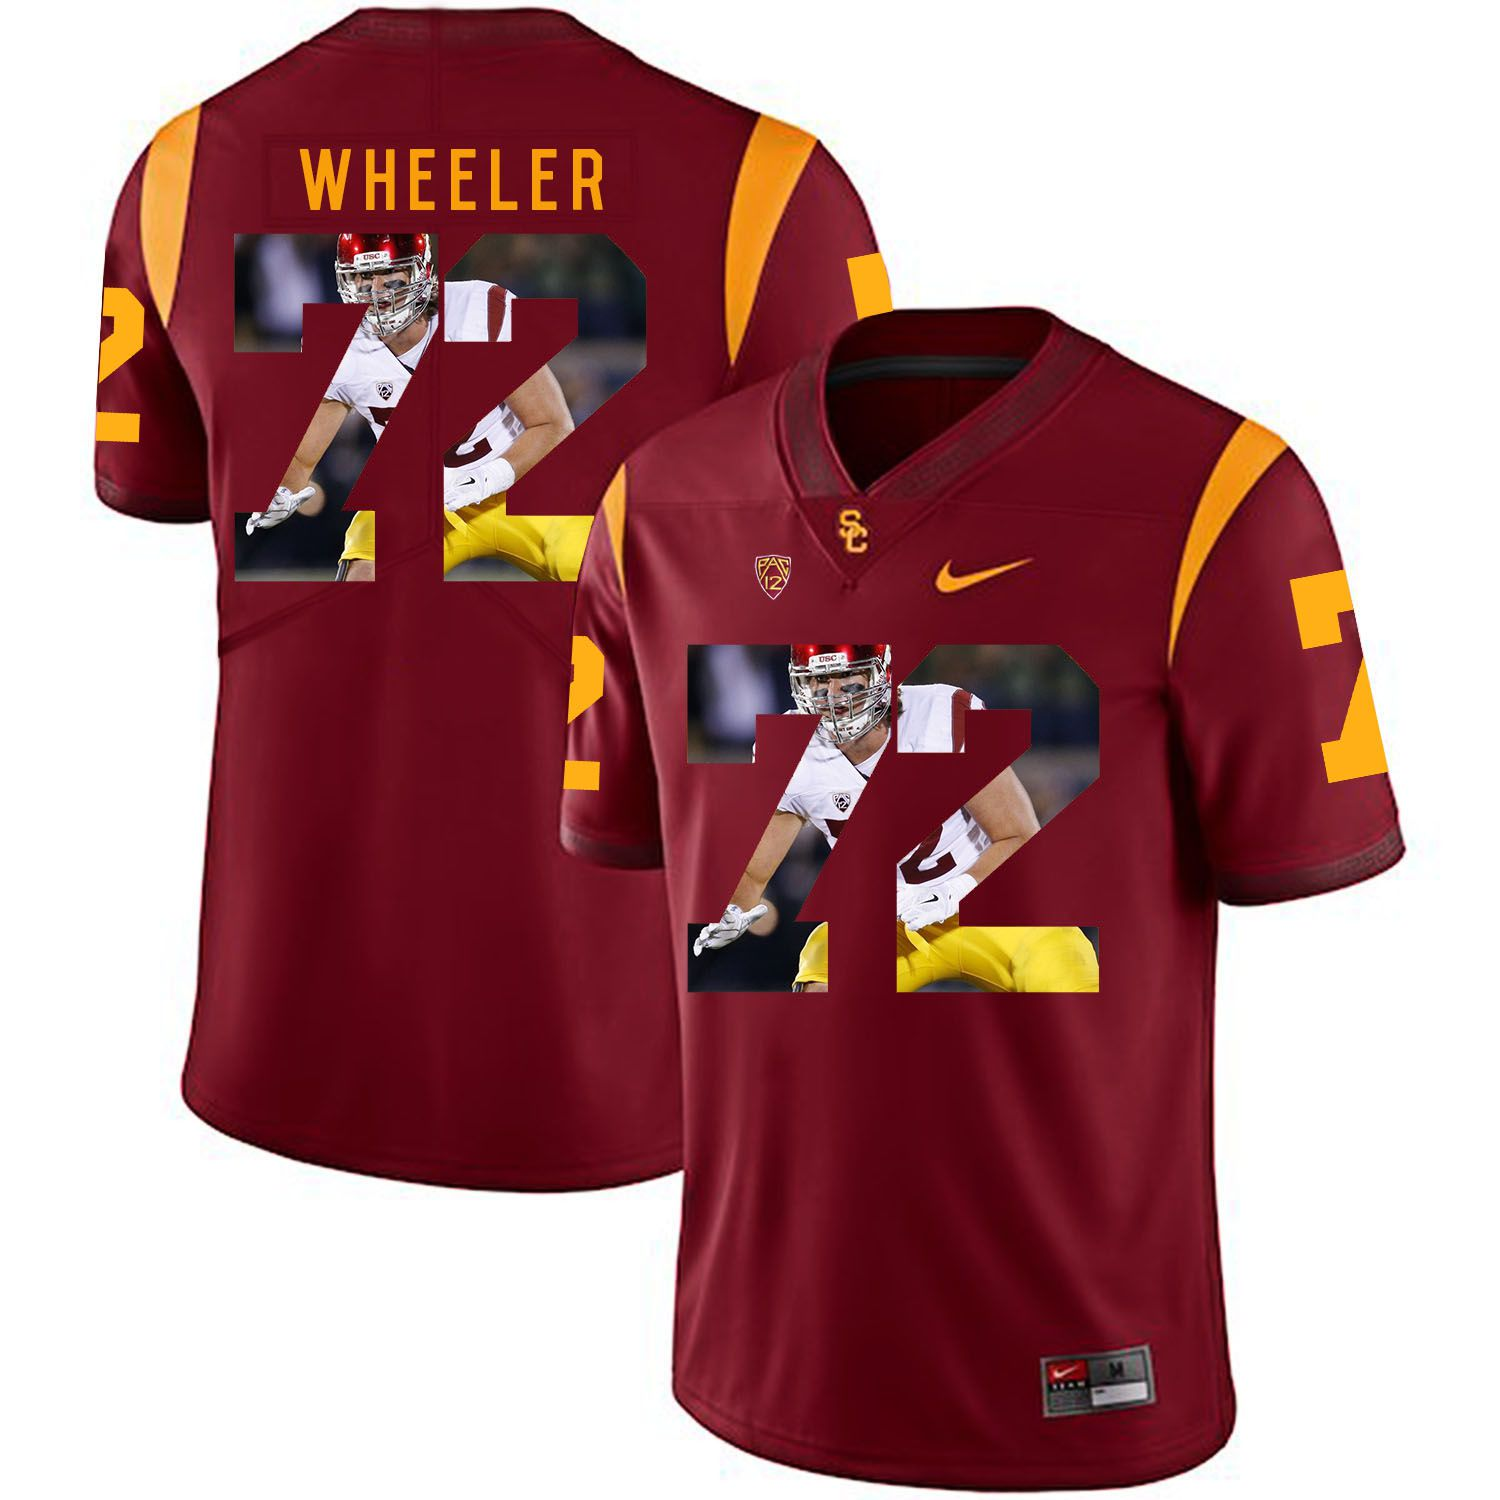 Men USC Trojans 72 Wheeler Red Fashion Edition Customized NCAA Jerseys